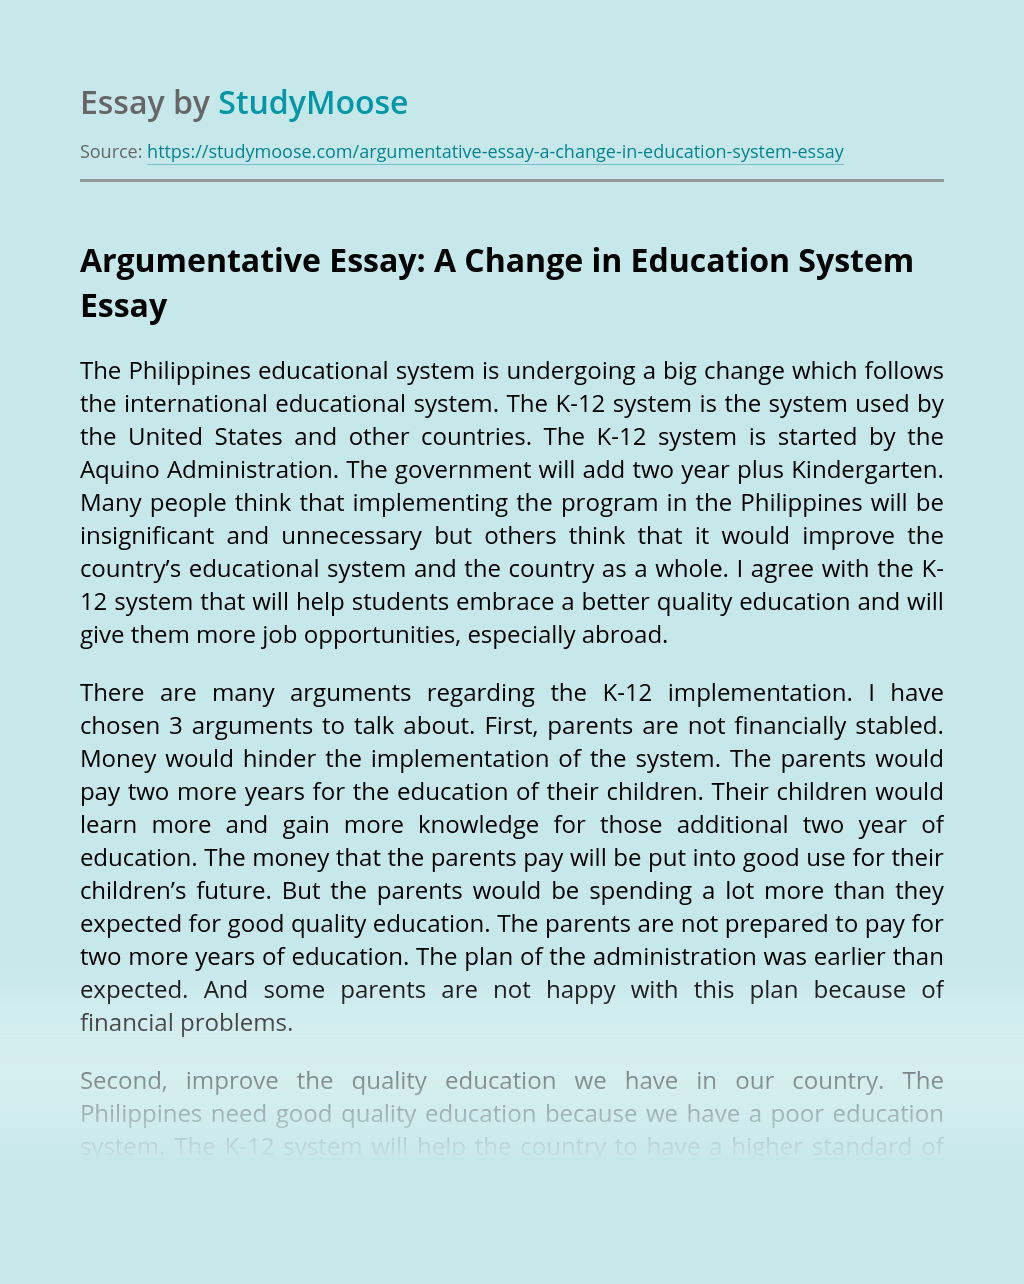 Argumentative Essay: A Change in Education System